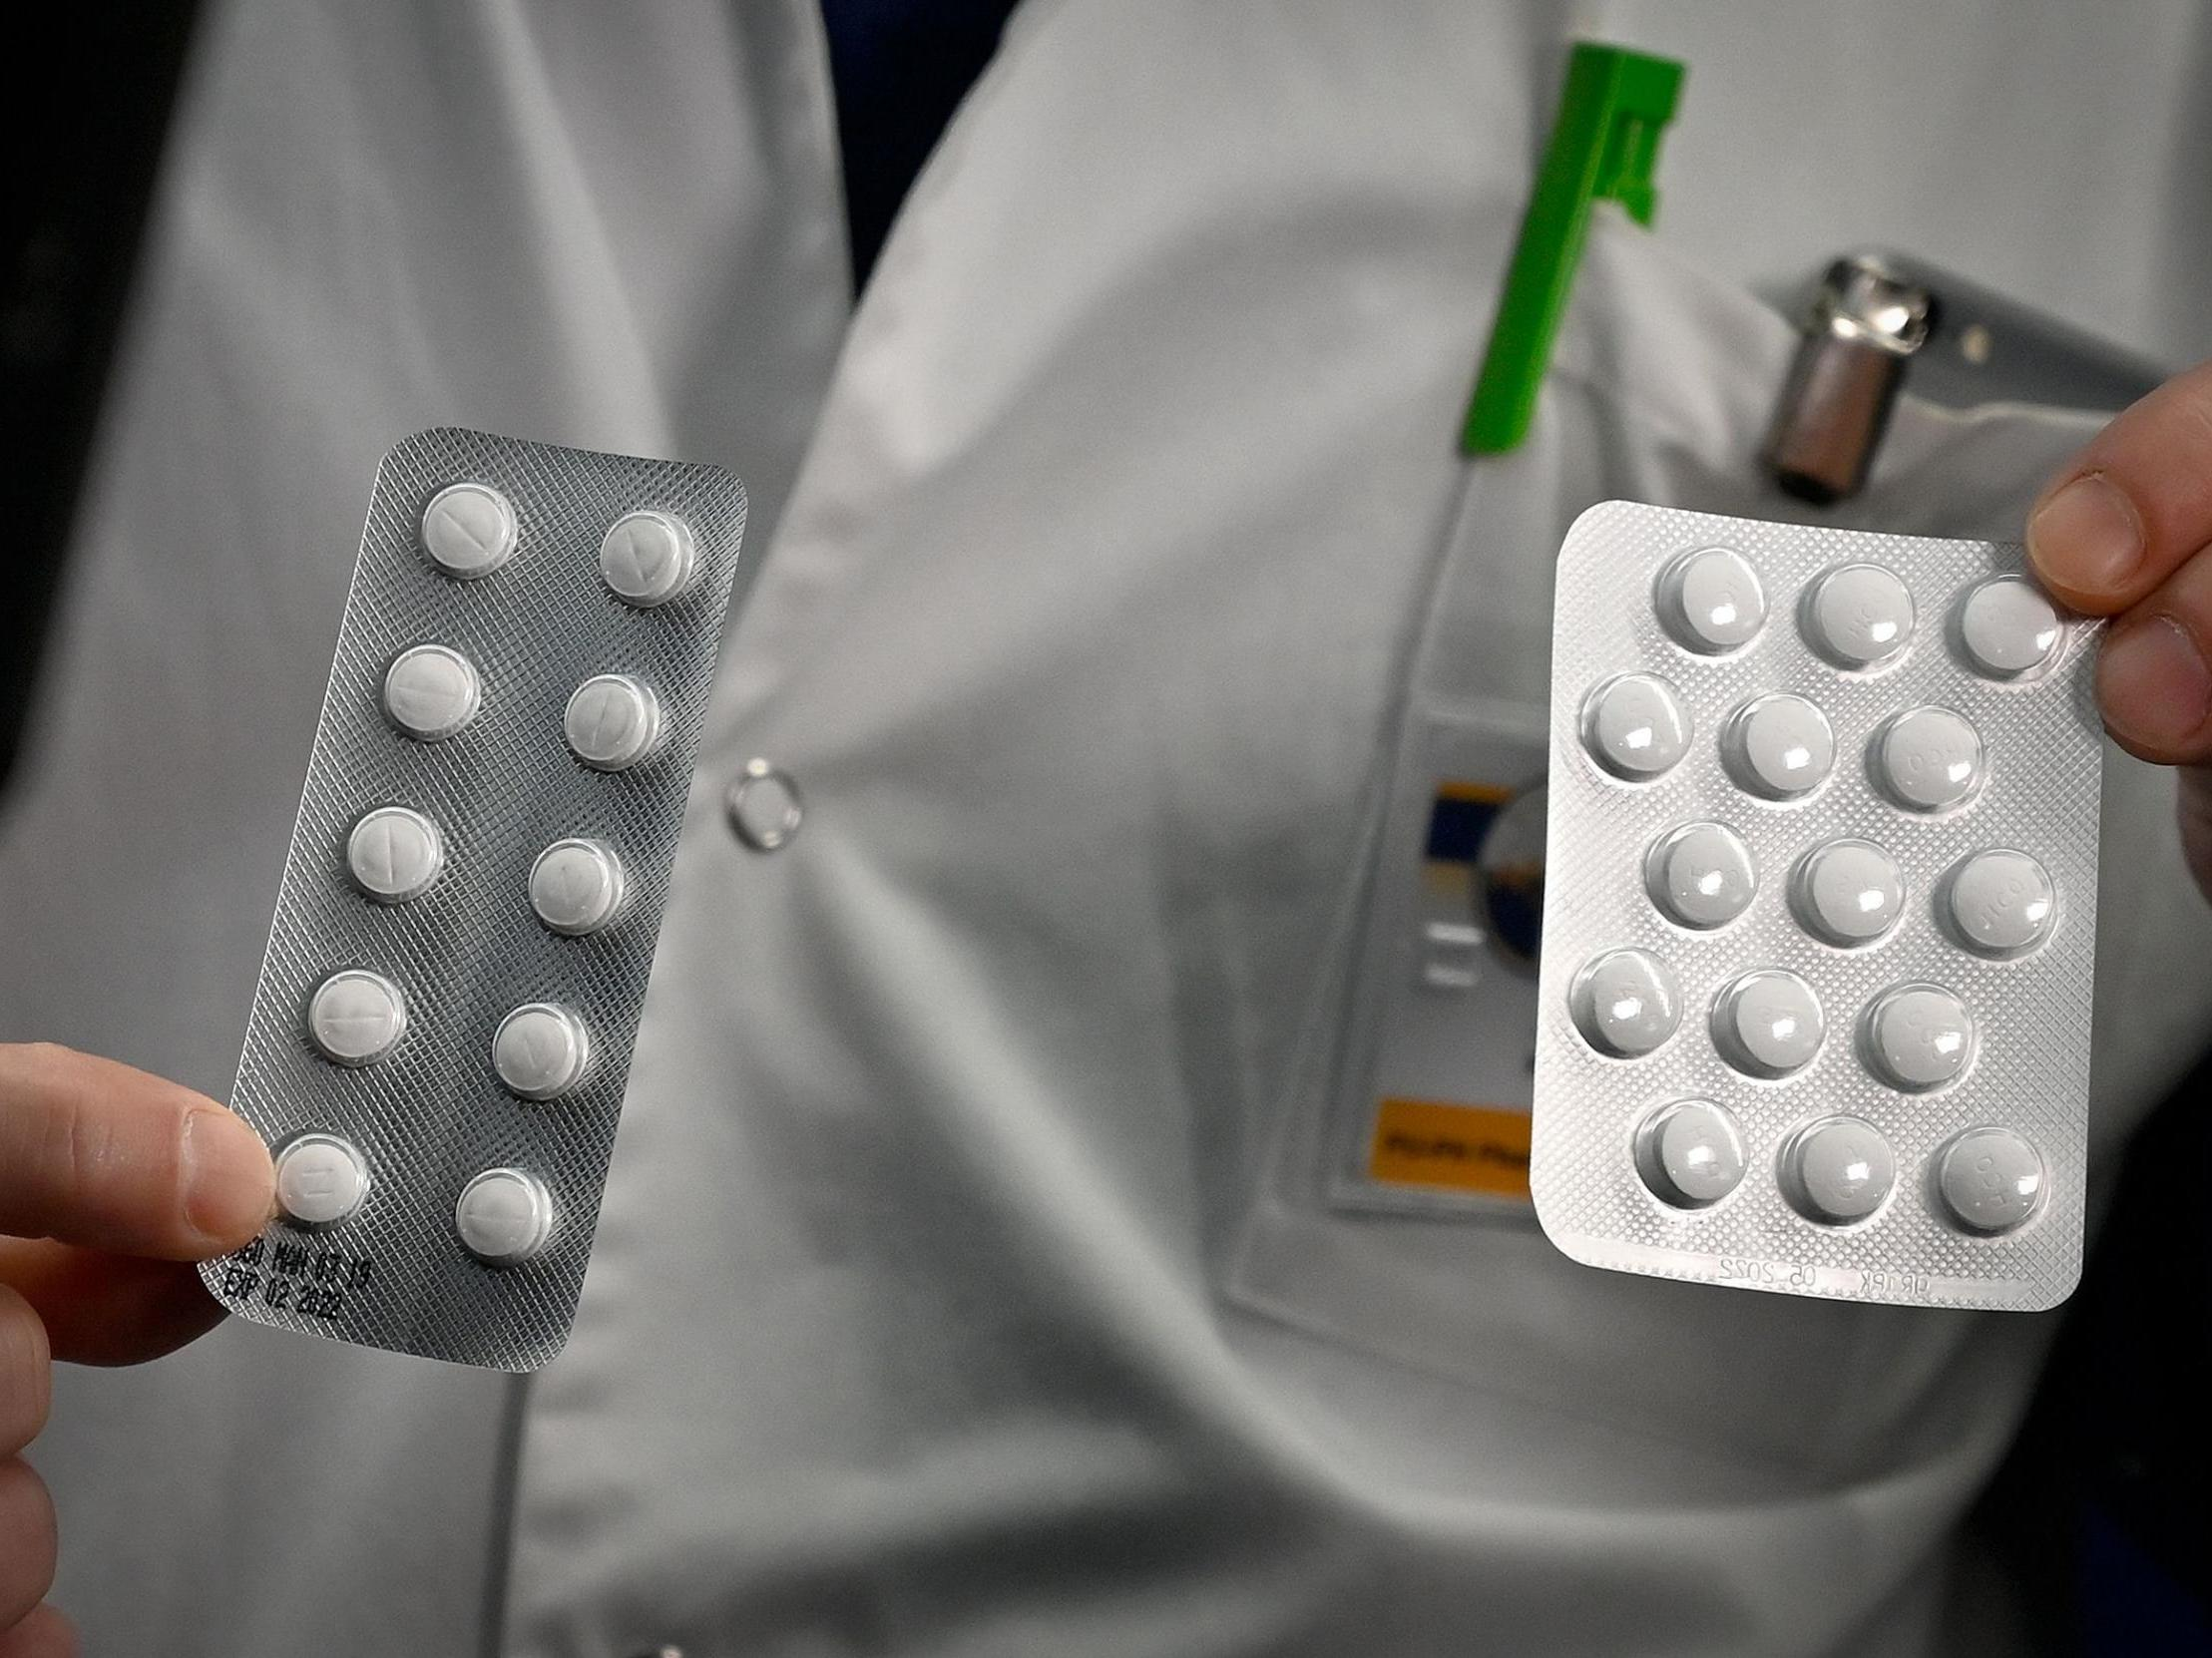 Coronavirus: Surge in people trying to buy unproven 'cures' promoted by Trump and Elon Musk, study finds photo